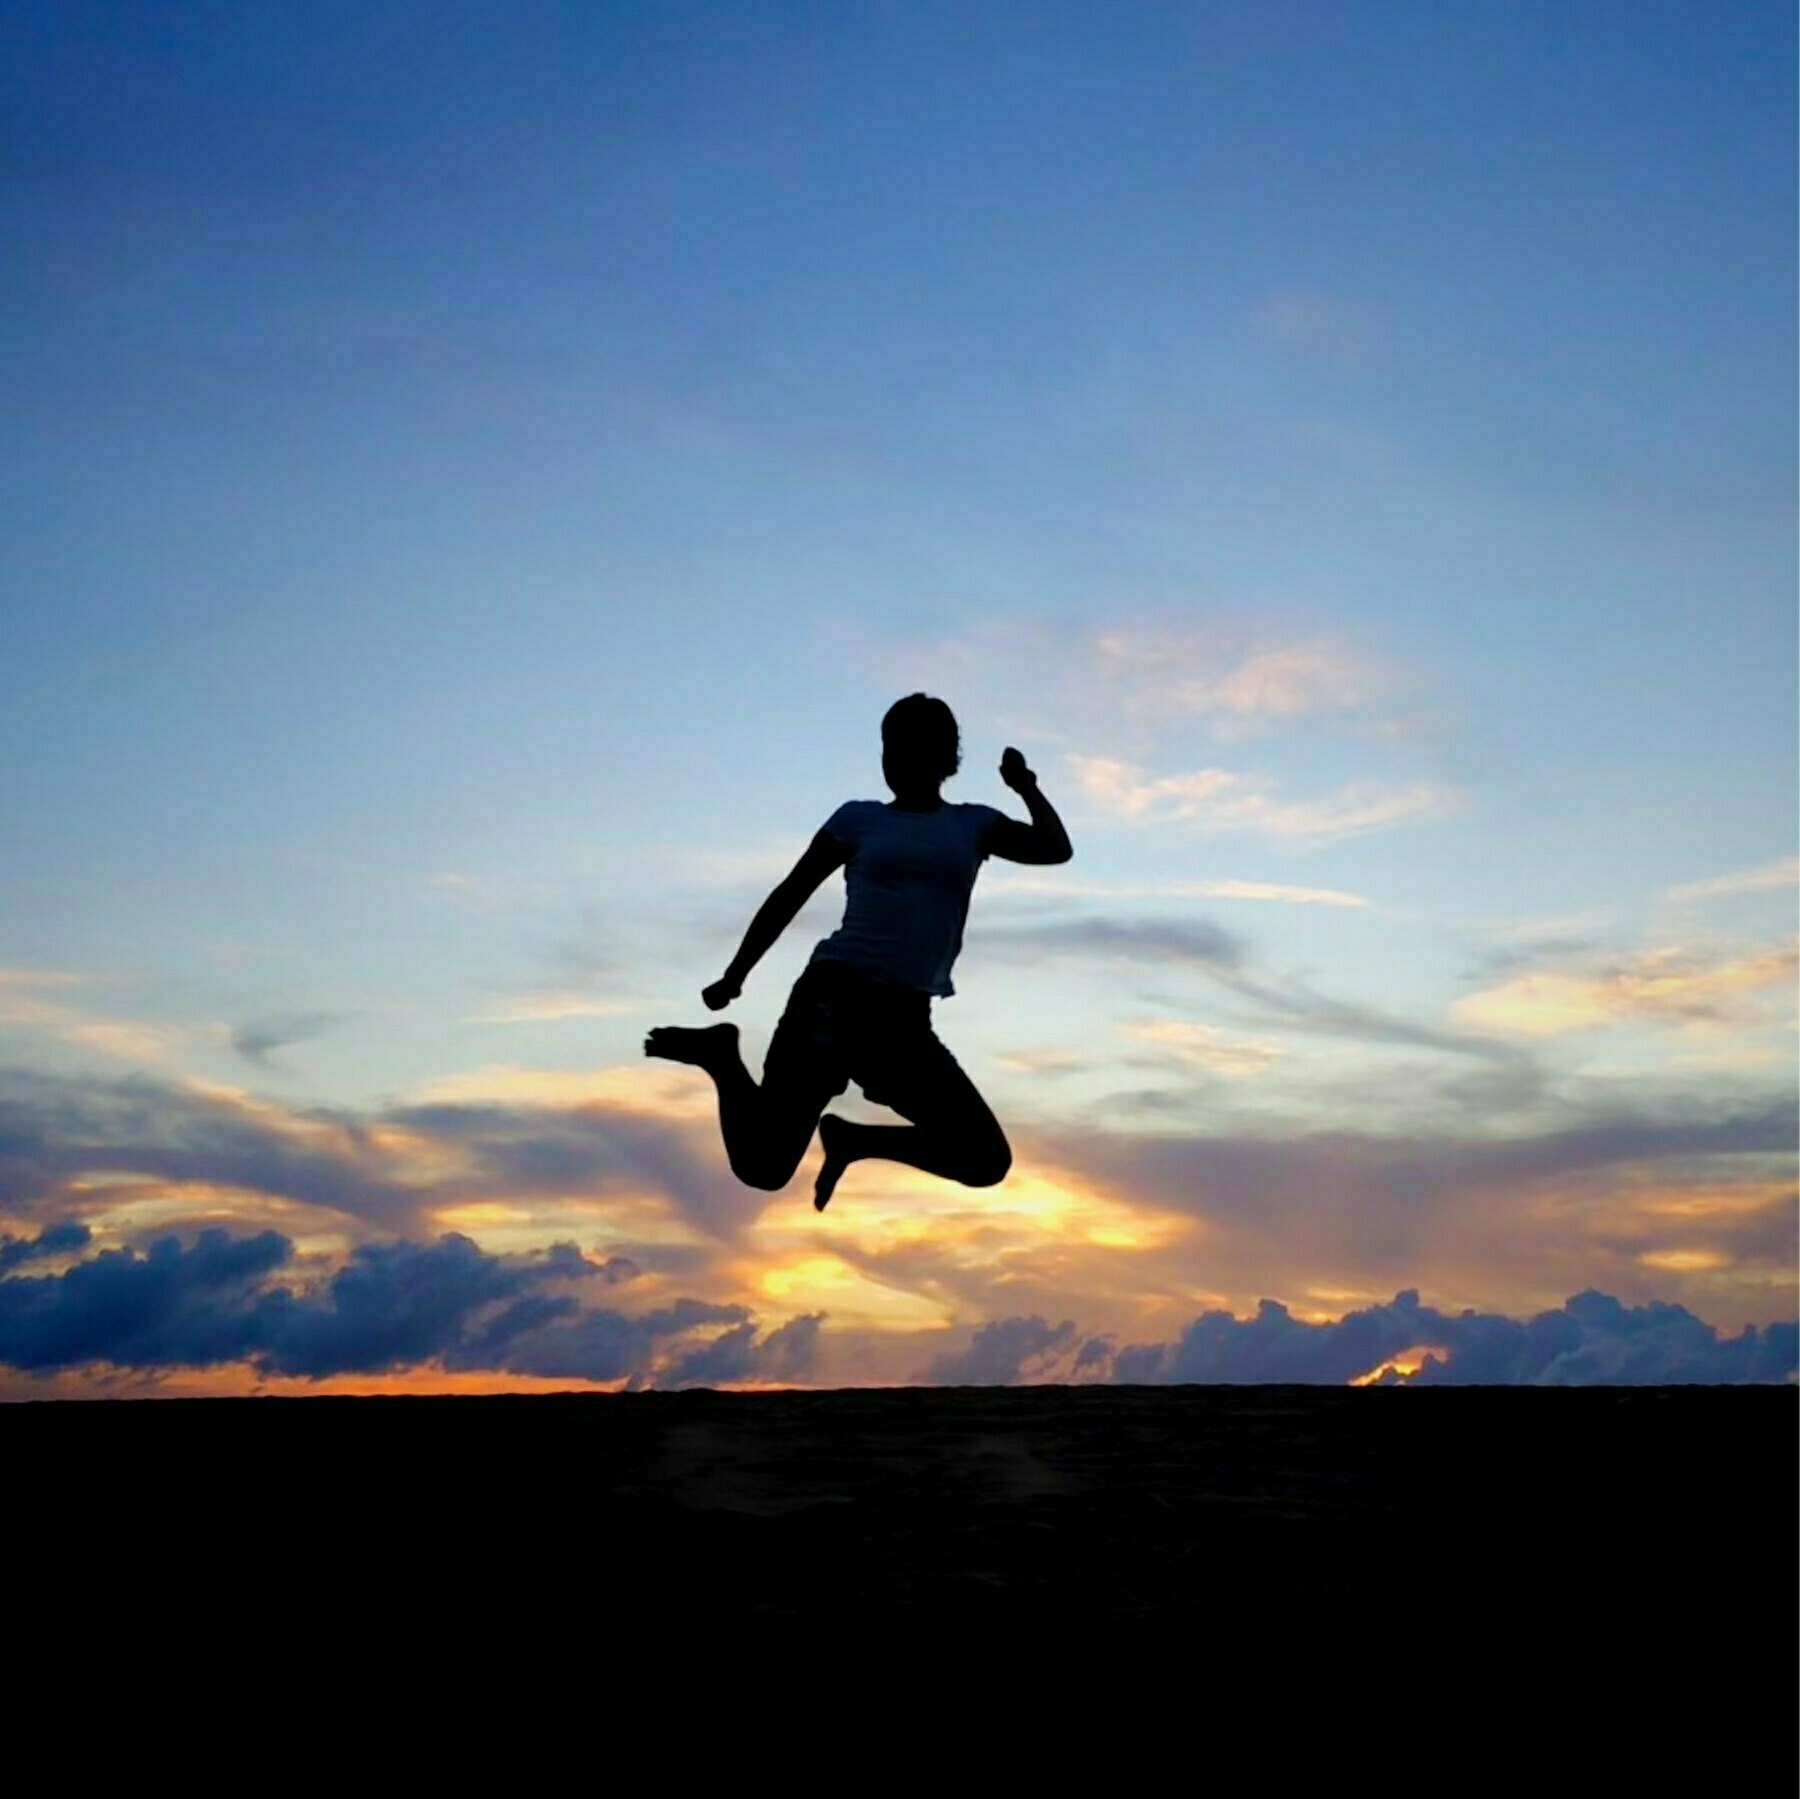 jumping with a sunset in the background